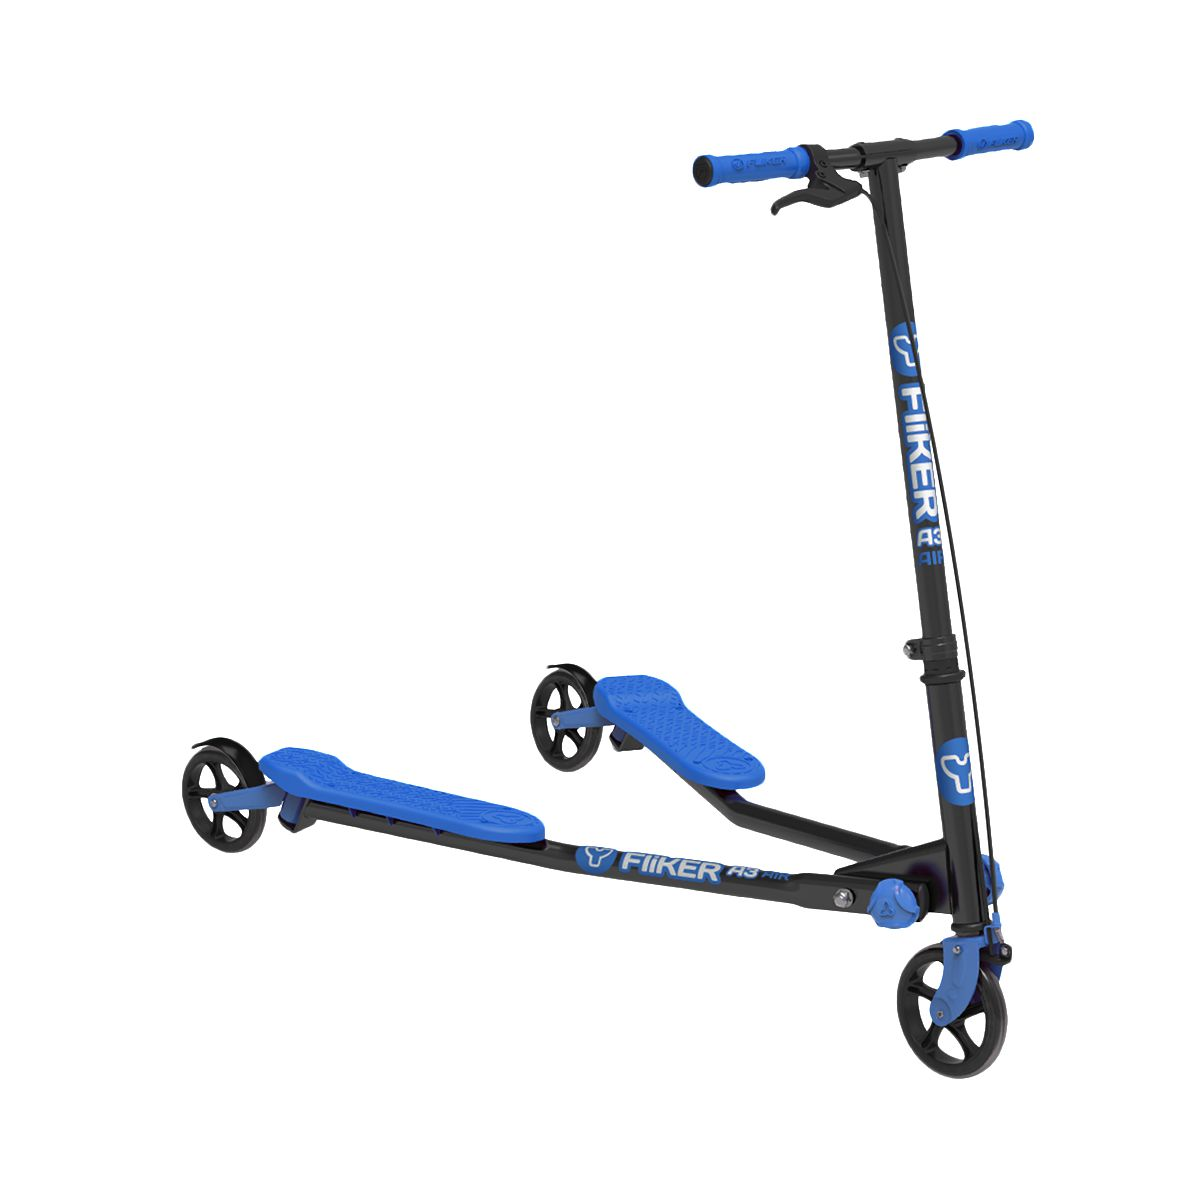 Y Fliker A3 Air Kids Scooter- Blue and Black